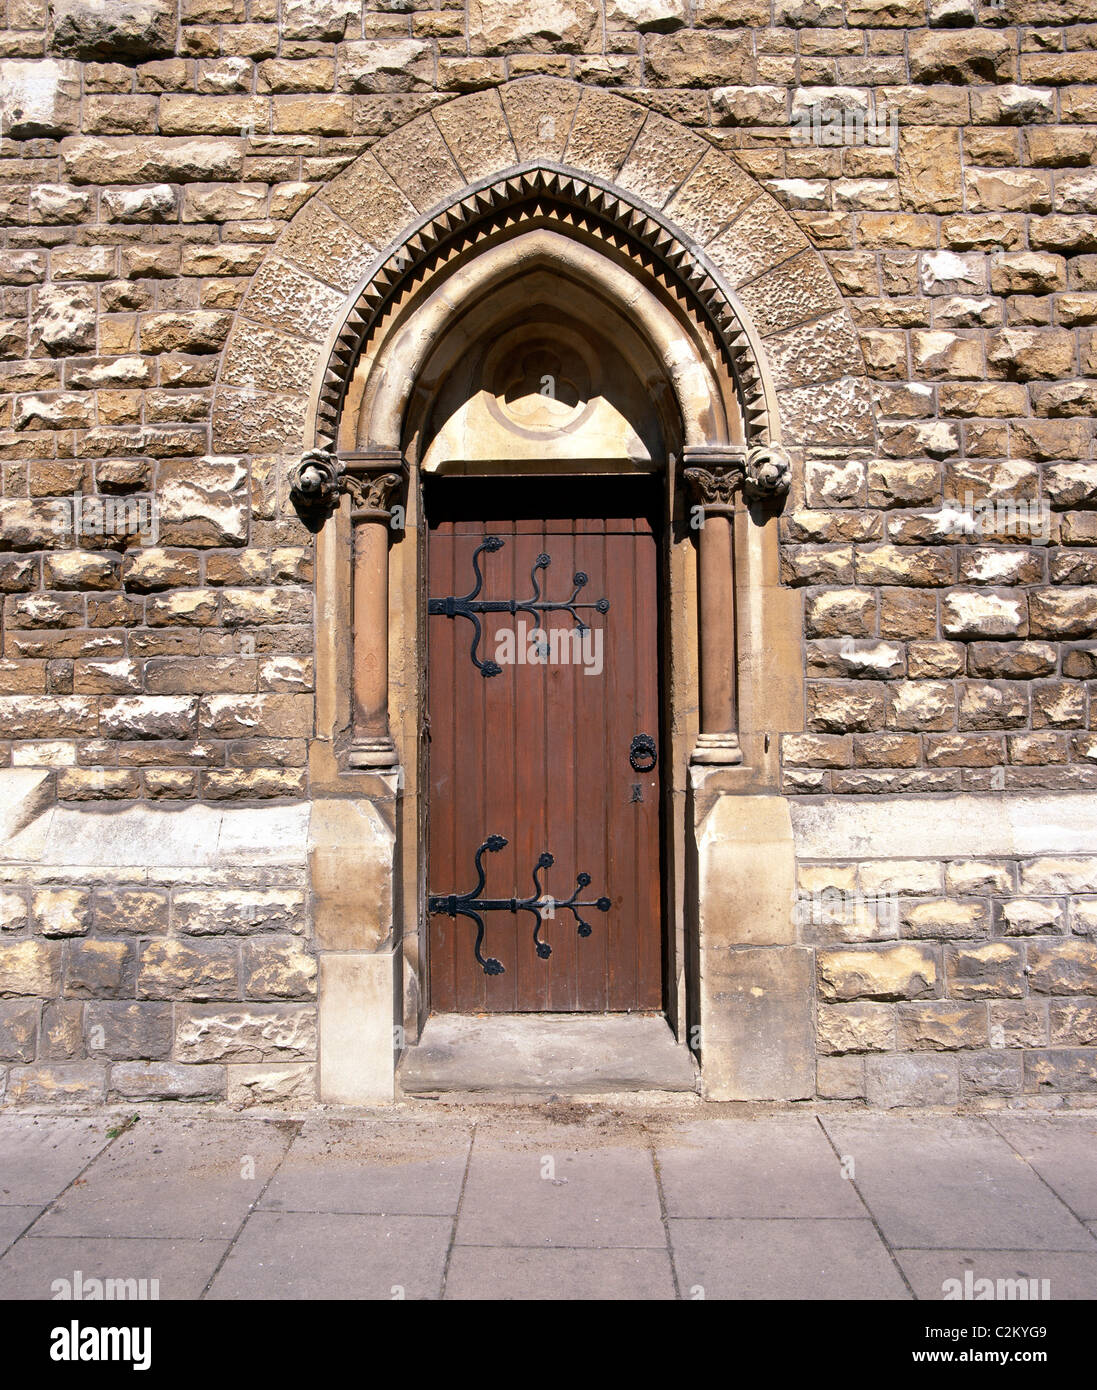 Doors - -ecclesiastical type door with ornate ironmongery / hinged in rough cast stone building - Stock Image